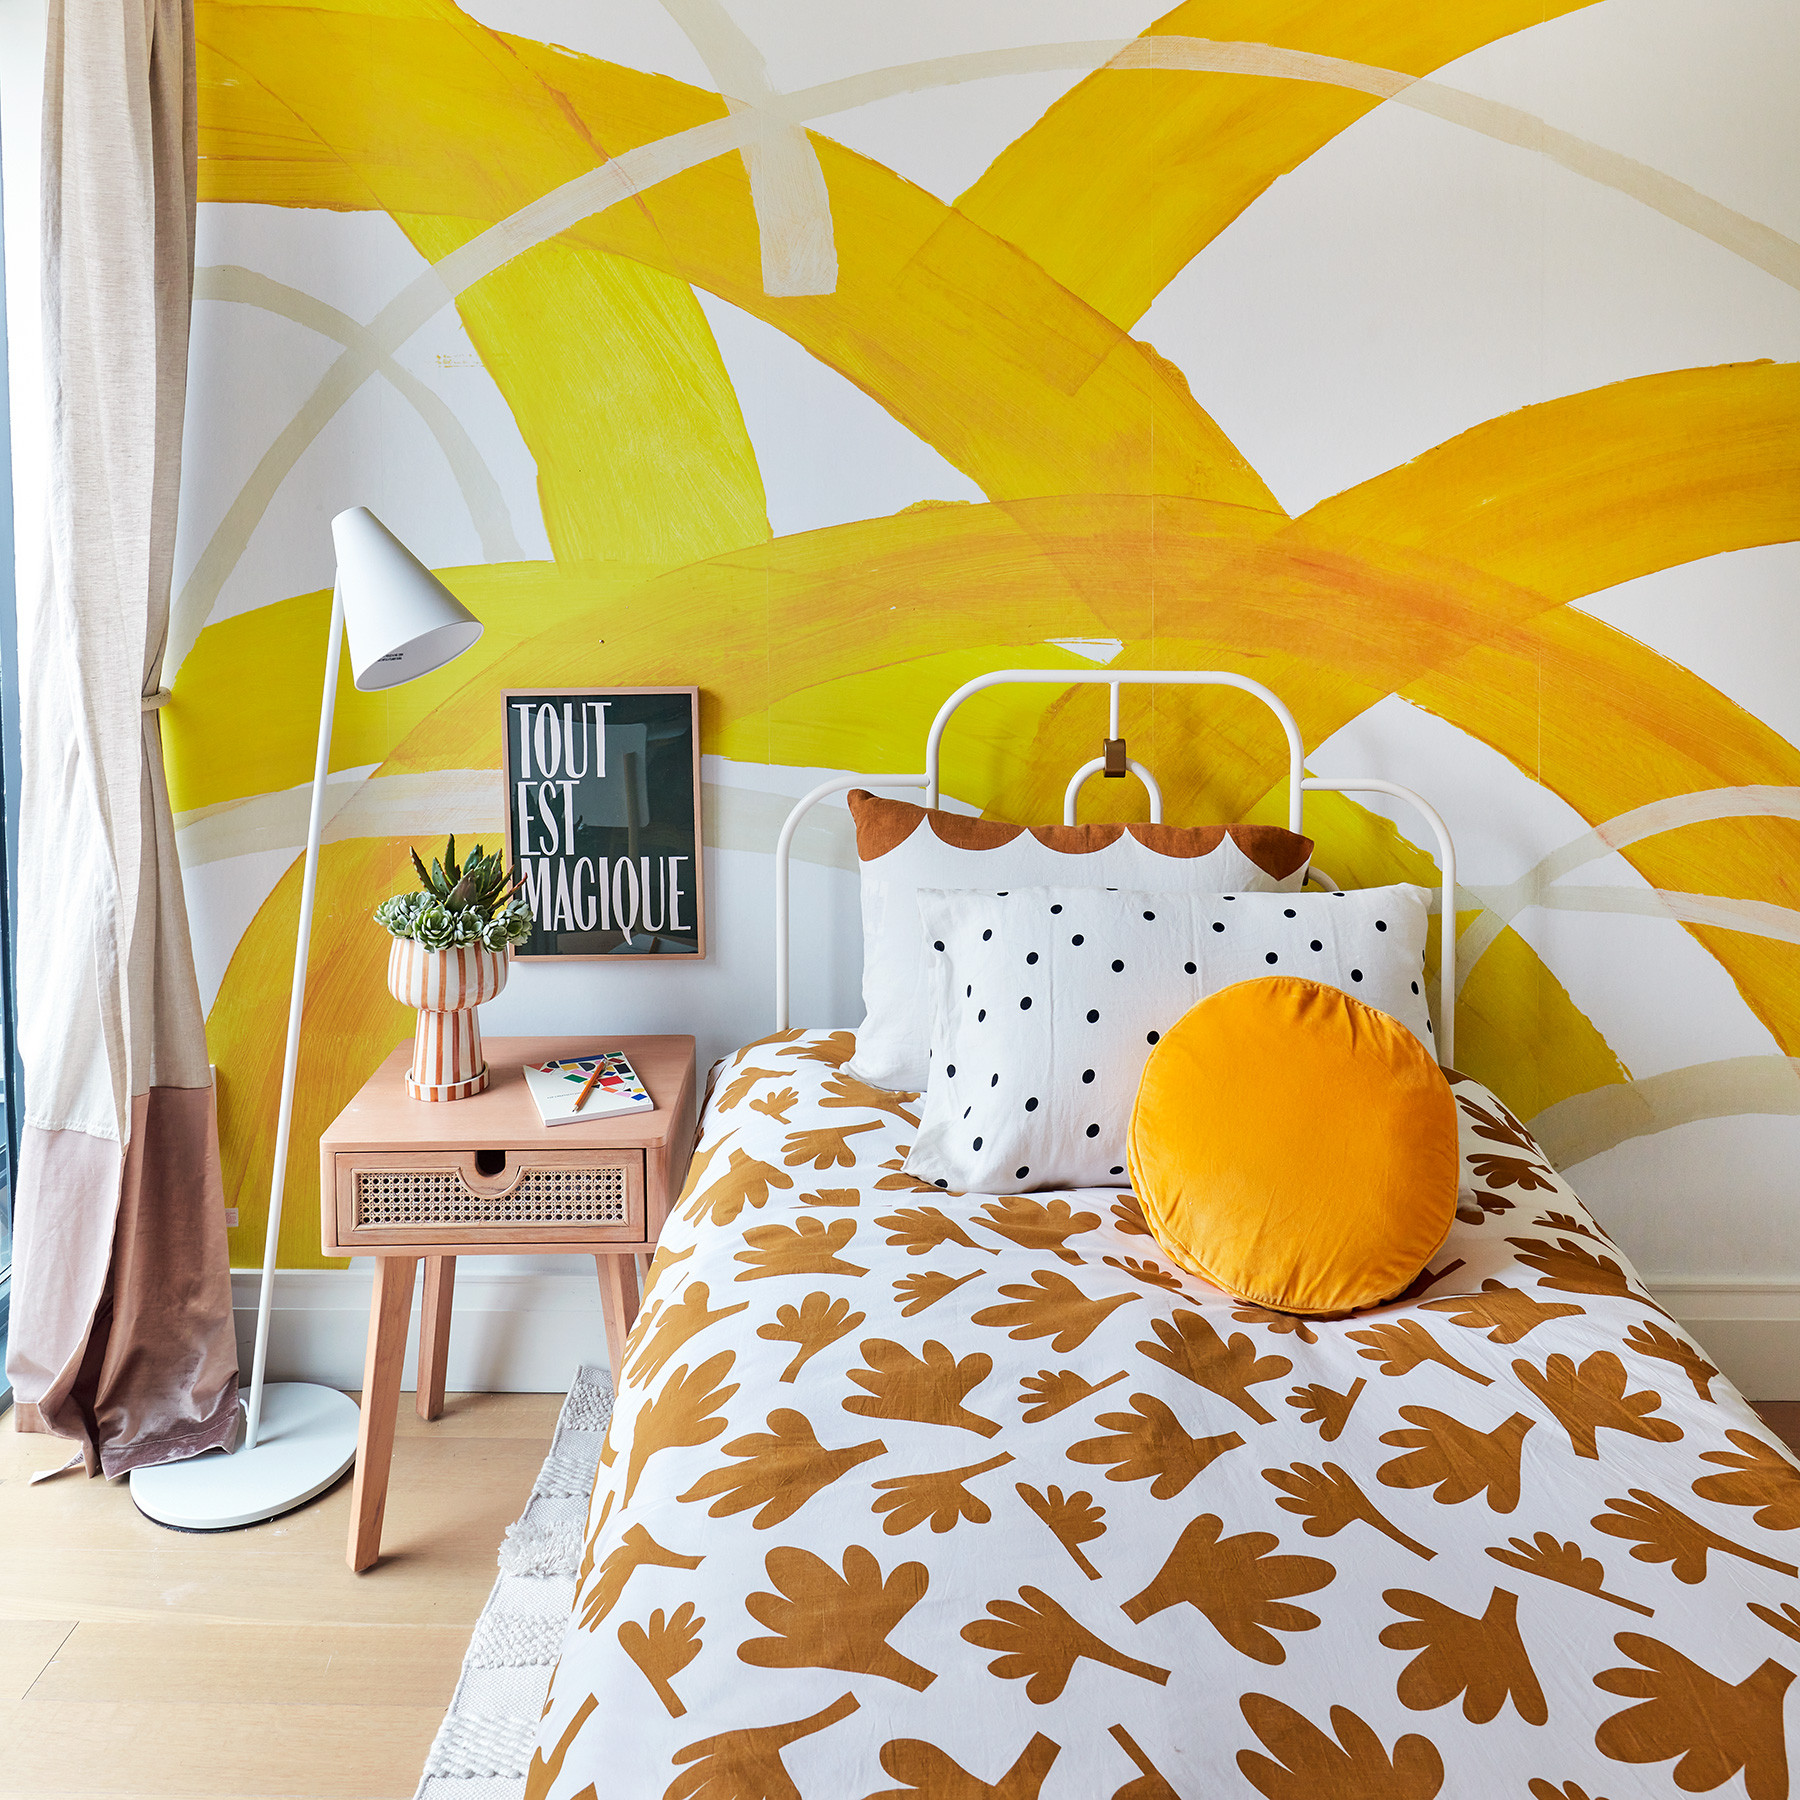 2020 Real Simple Home Tour: Tween Room